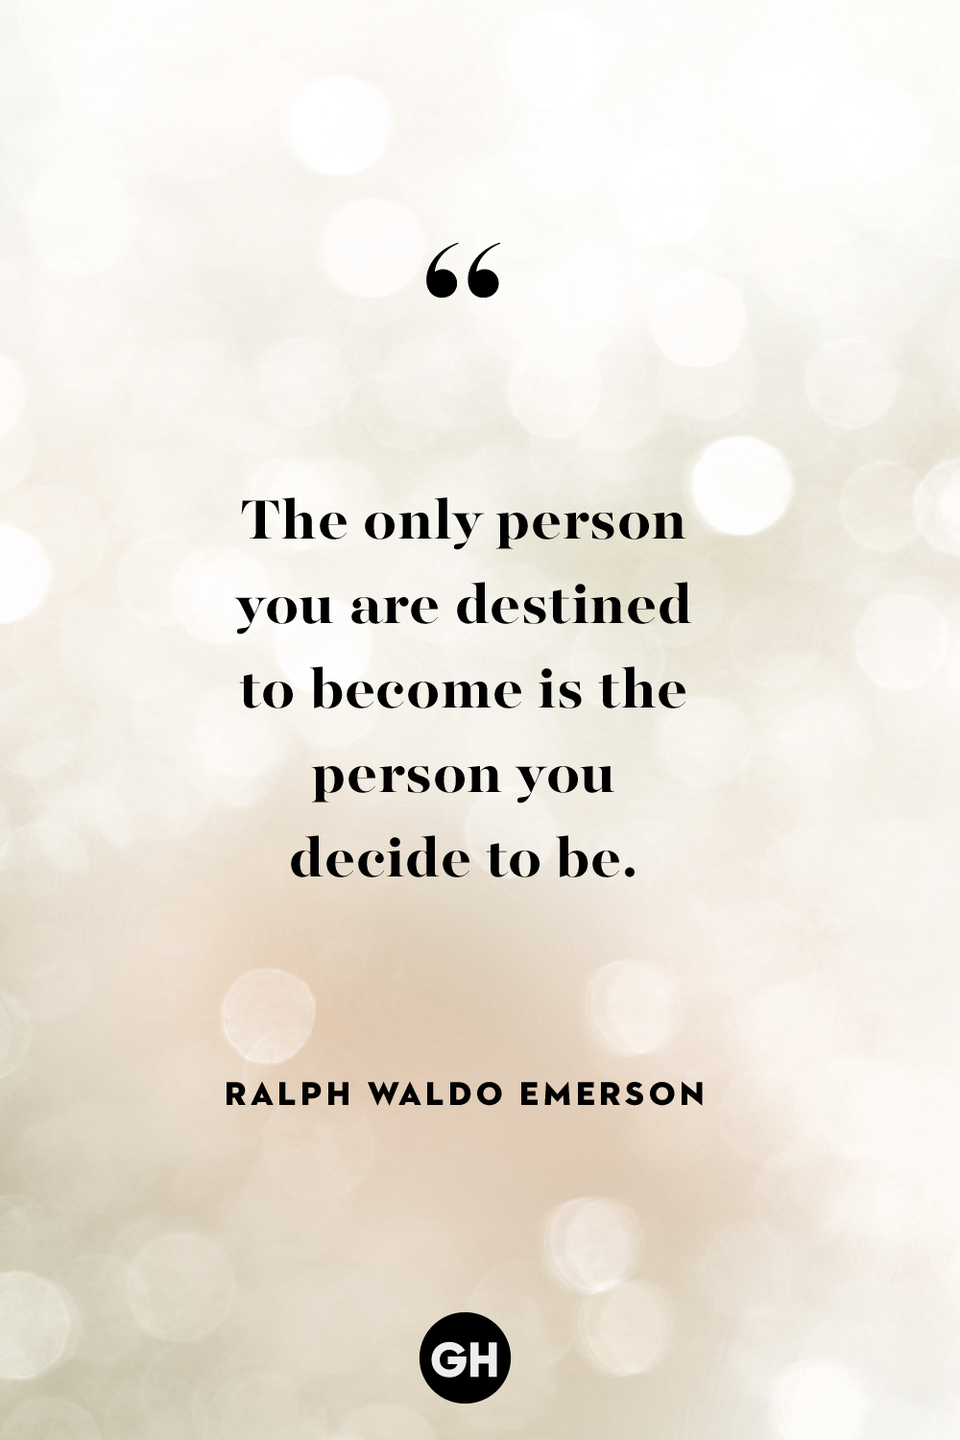 <p>The only person you are destined to become is the person you decide to be.</p>